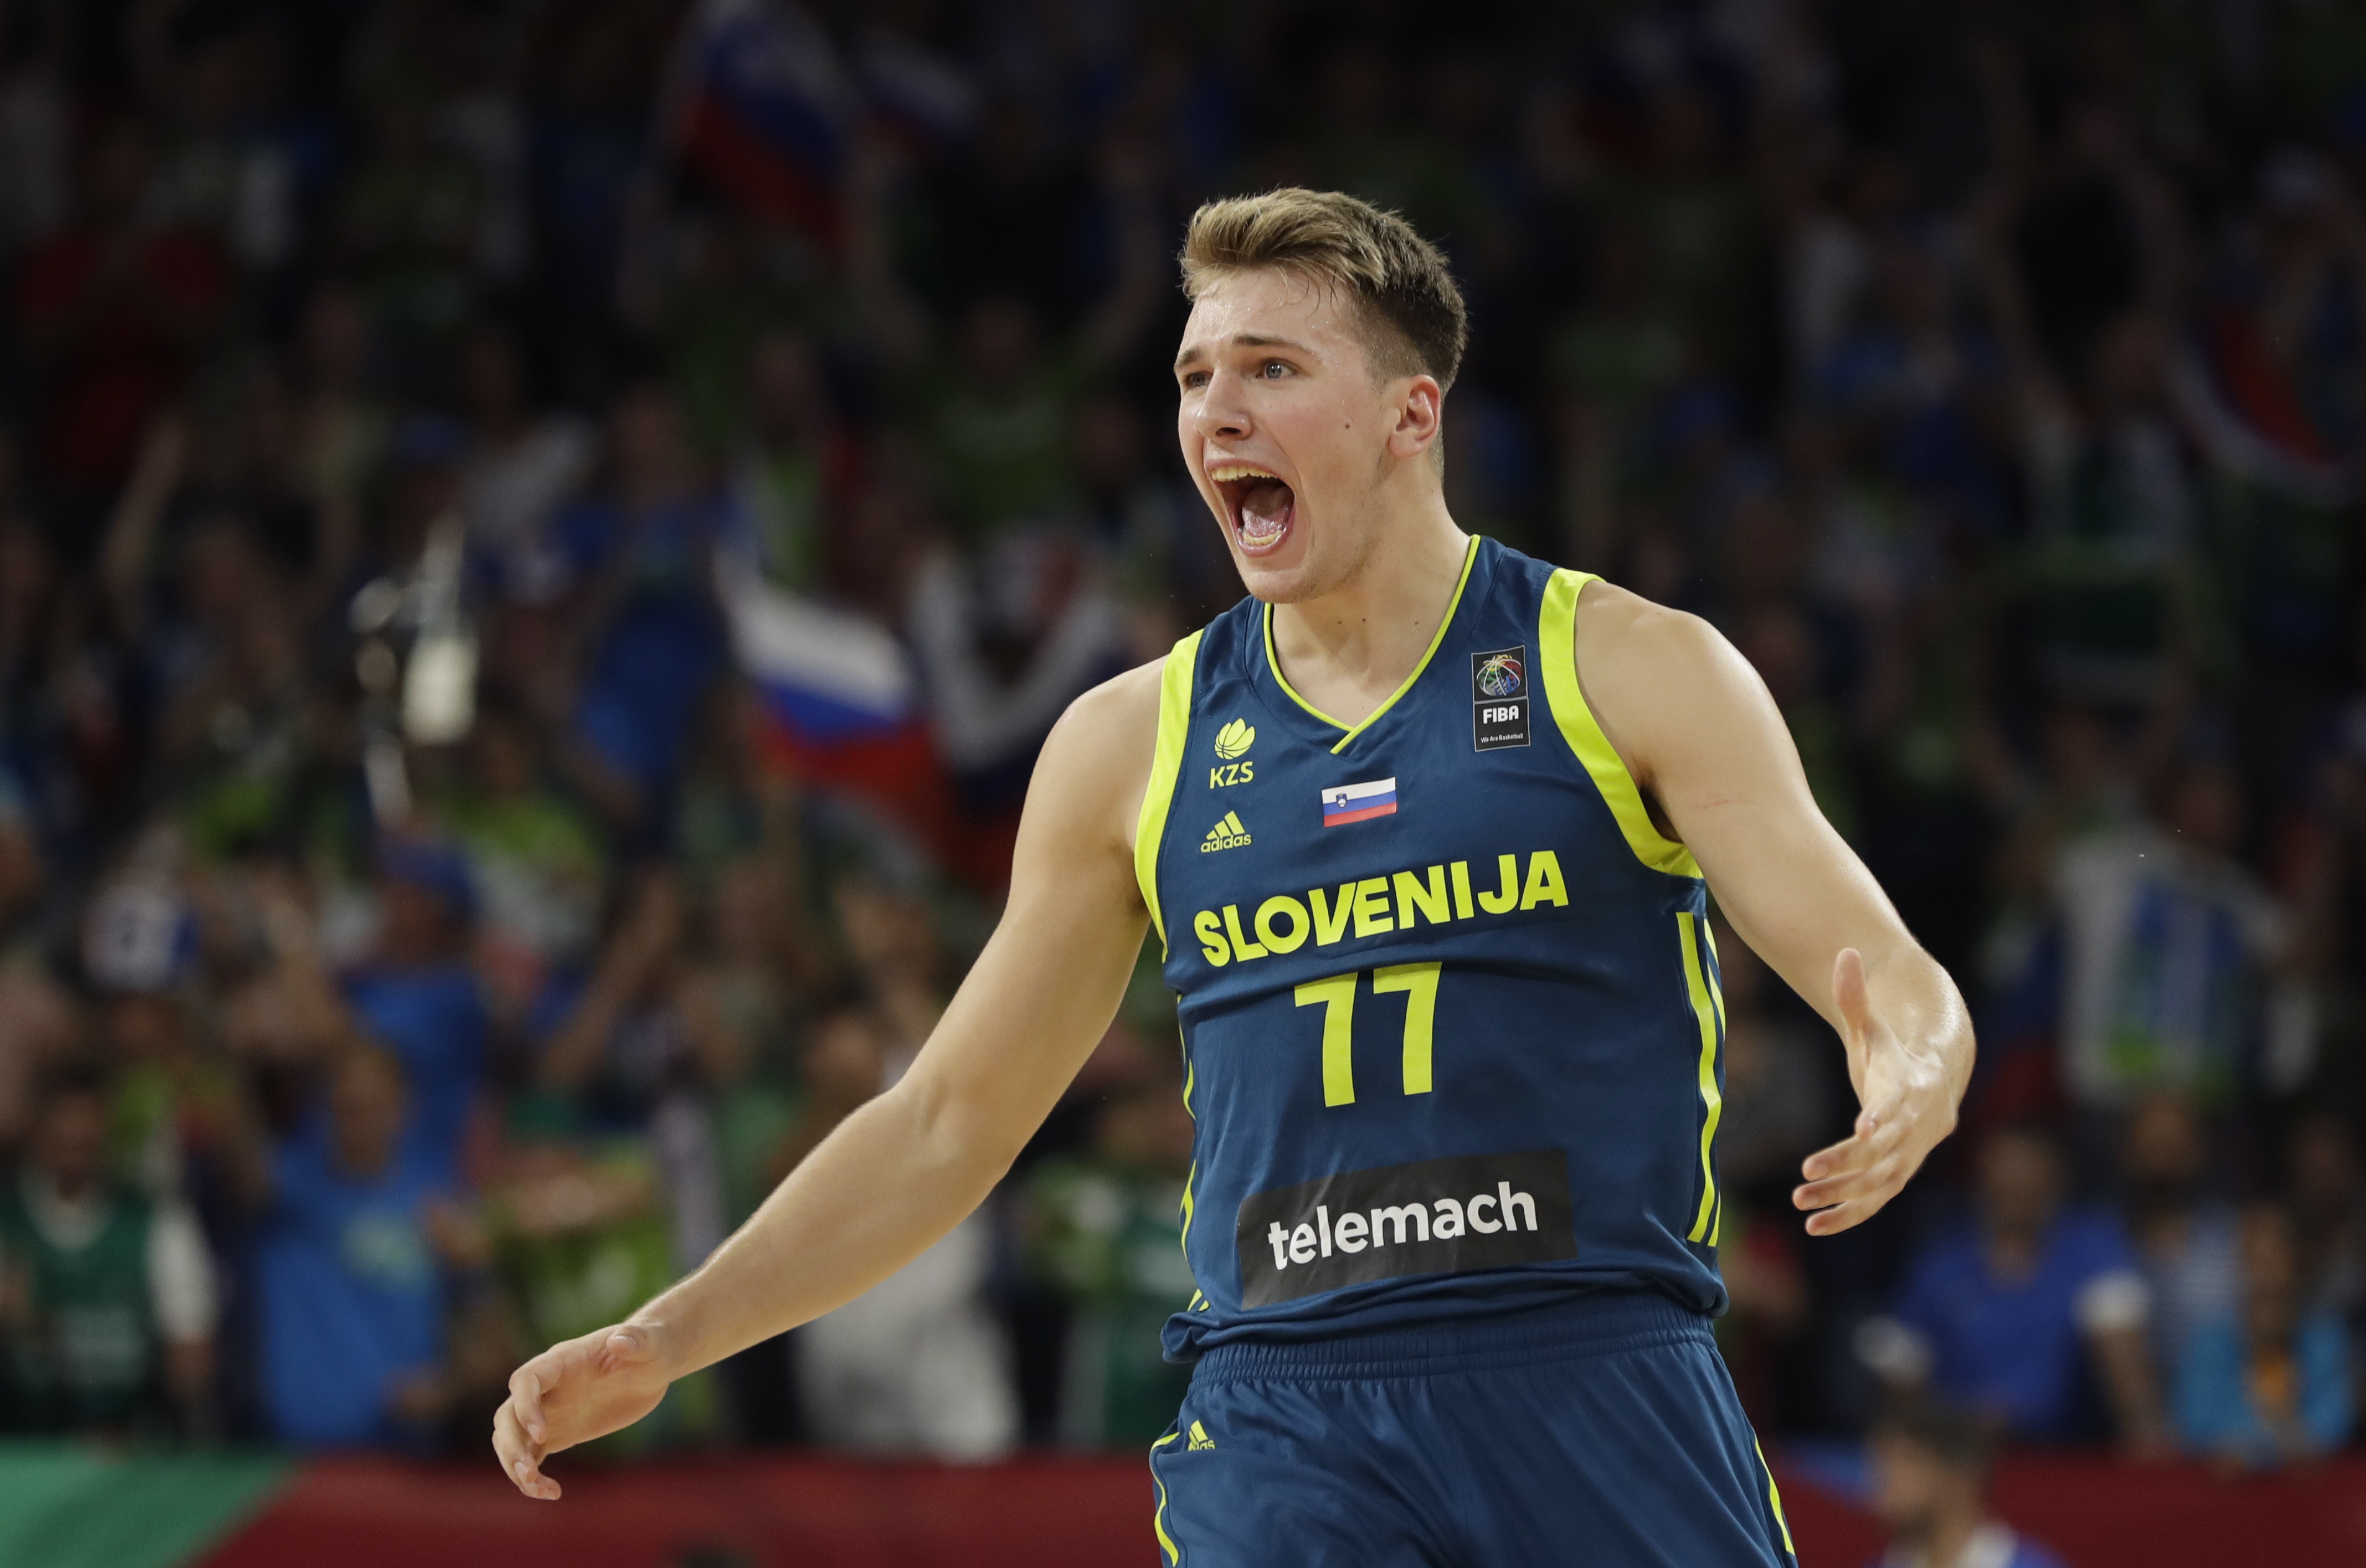 NBA draft profile: Can Dirk Nowitzki pass the torch to another Euro in Luka Doncic?